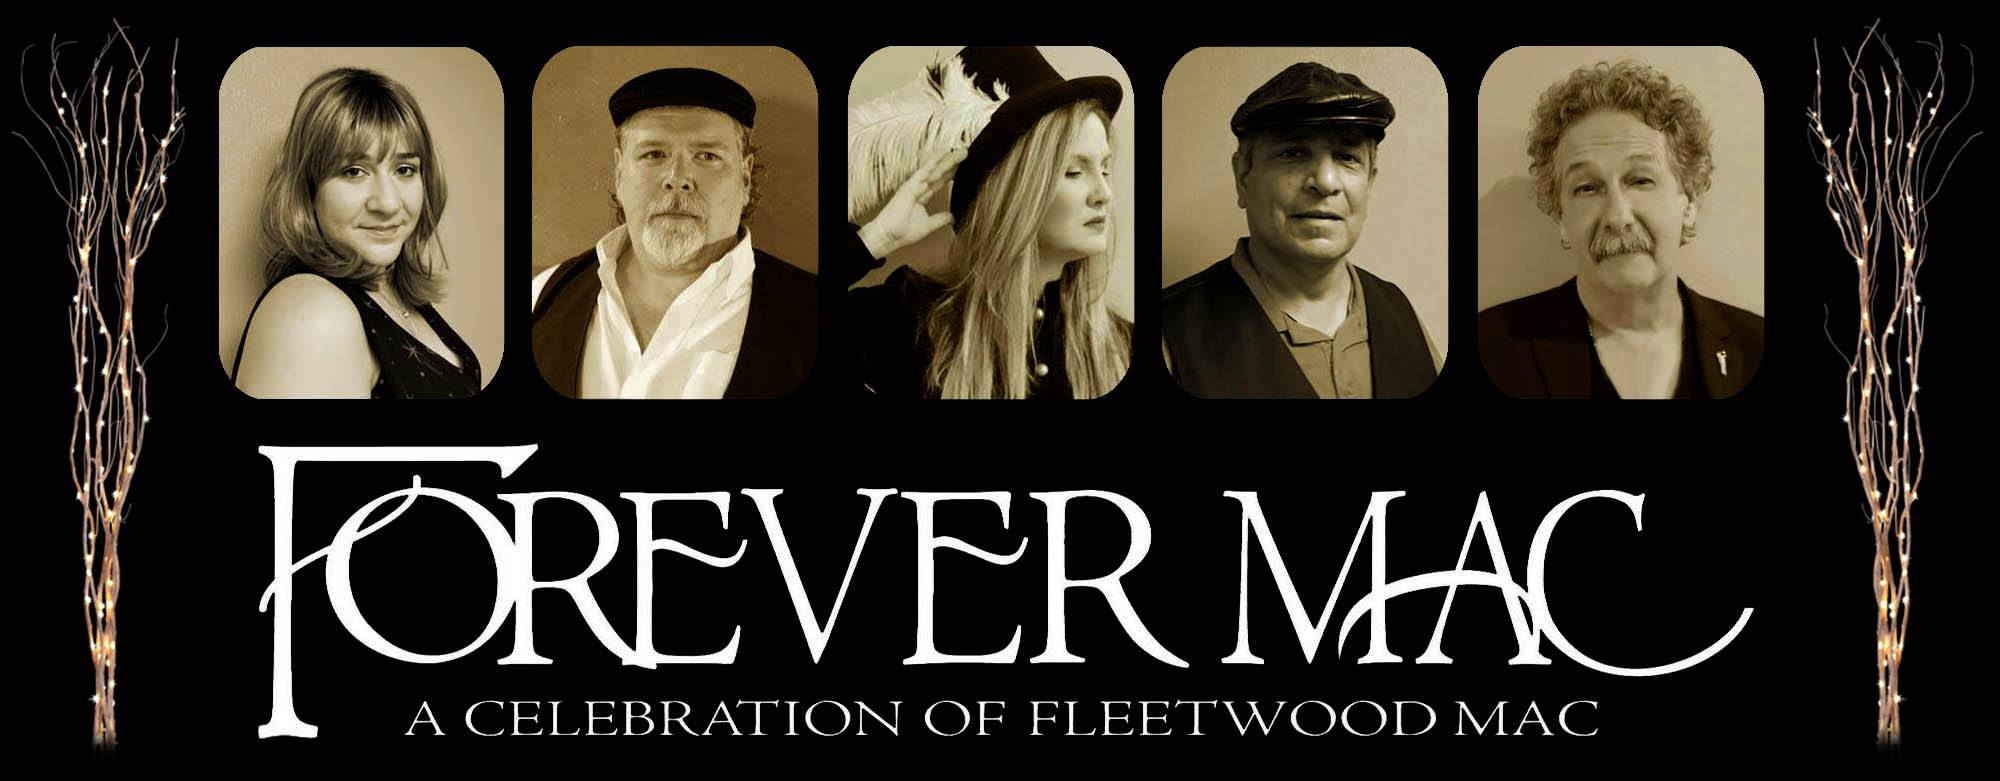 Fleetwood Mac Tribute: Forever Mac - hero